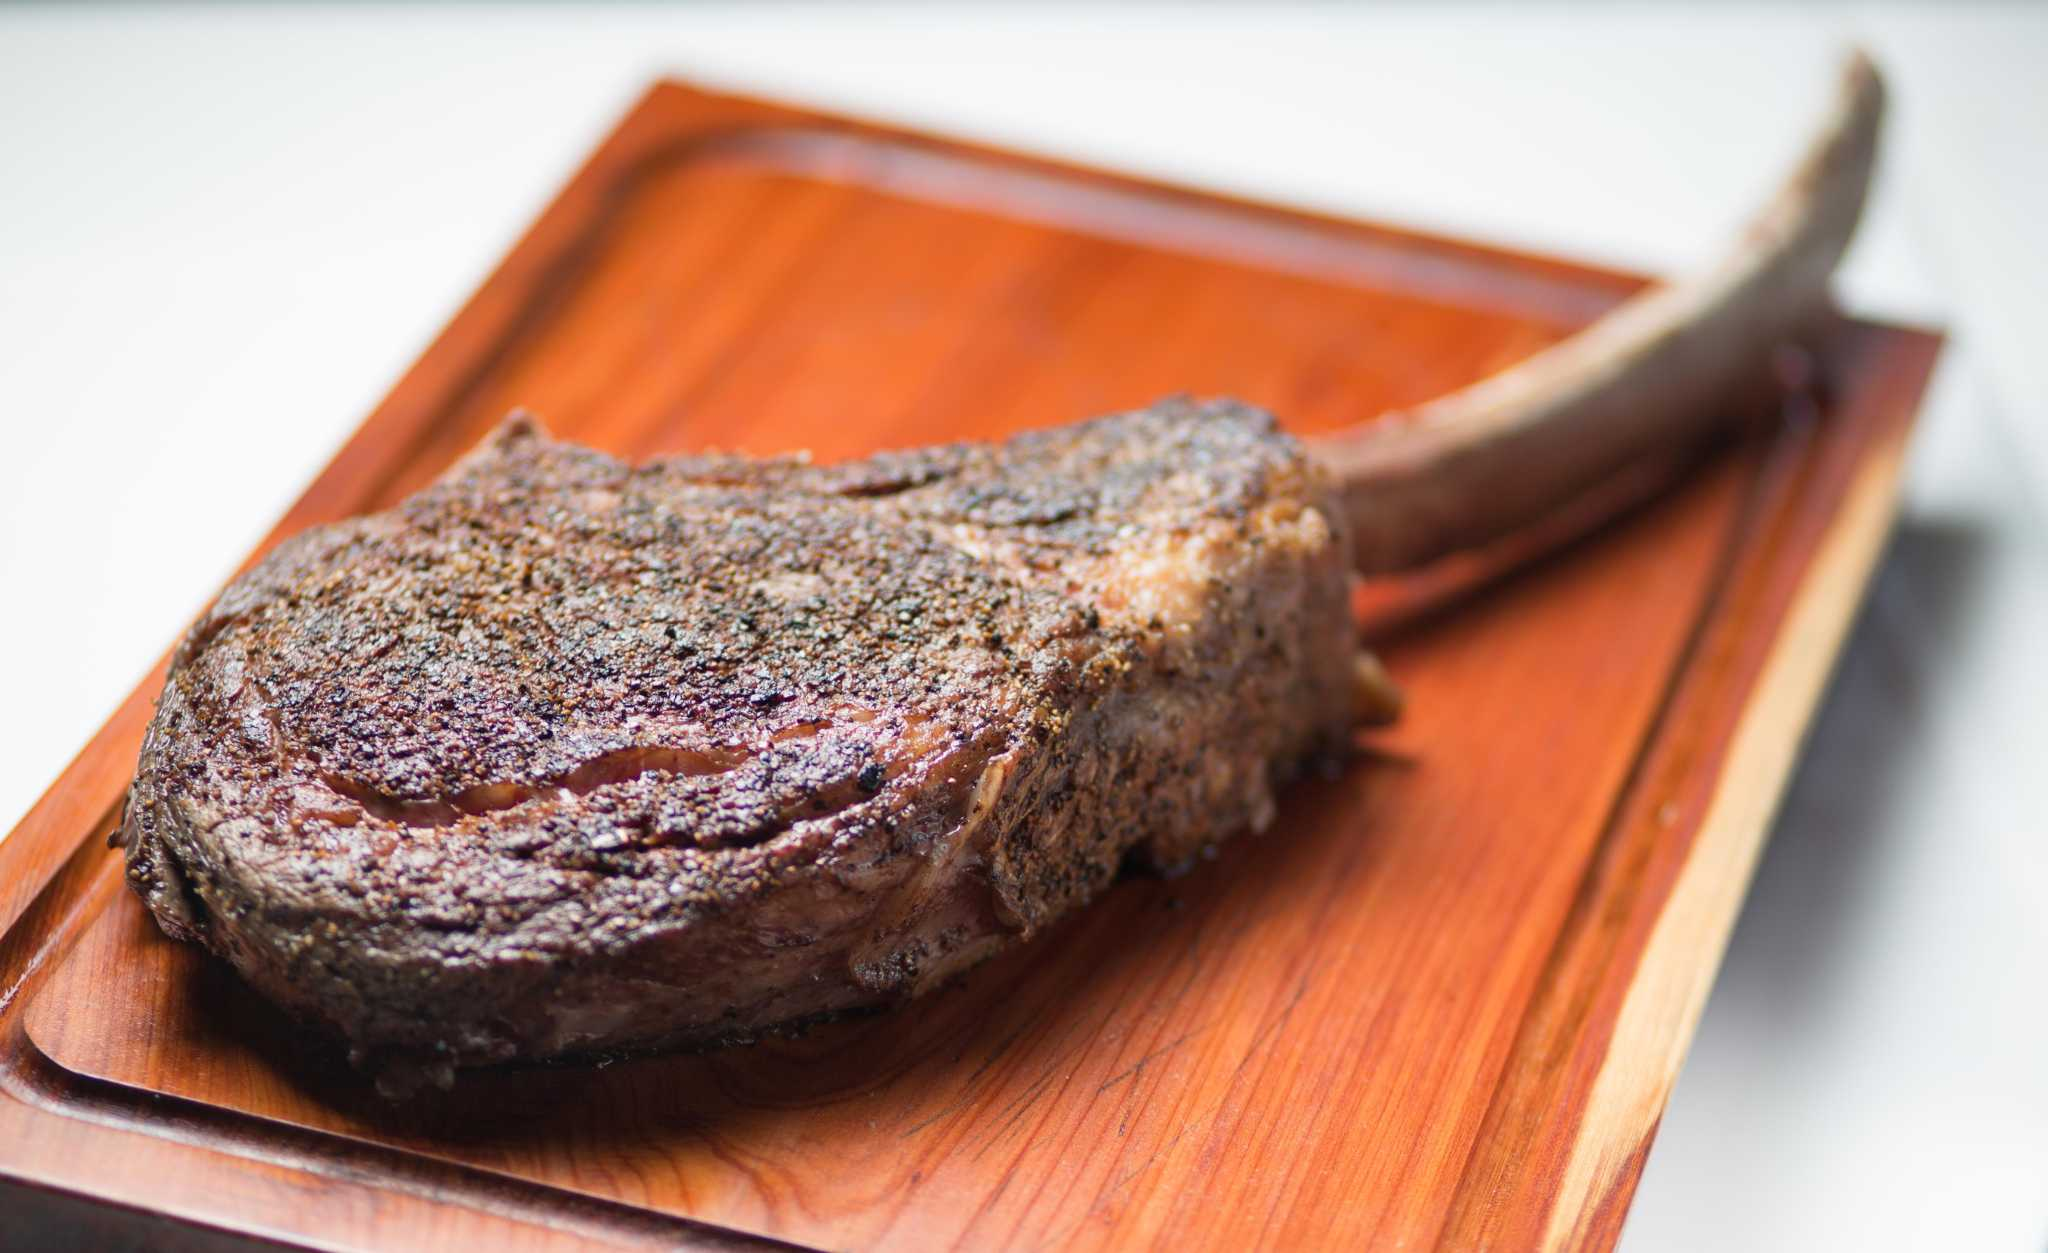 Popular Pearland steakhouse to launch second location in The Woodlands